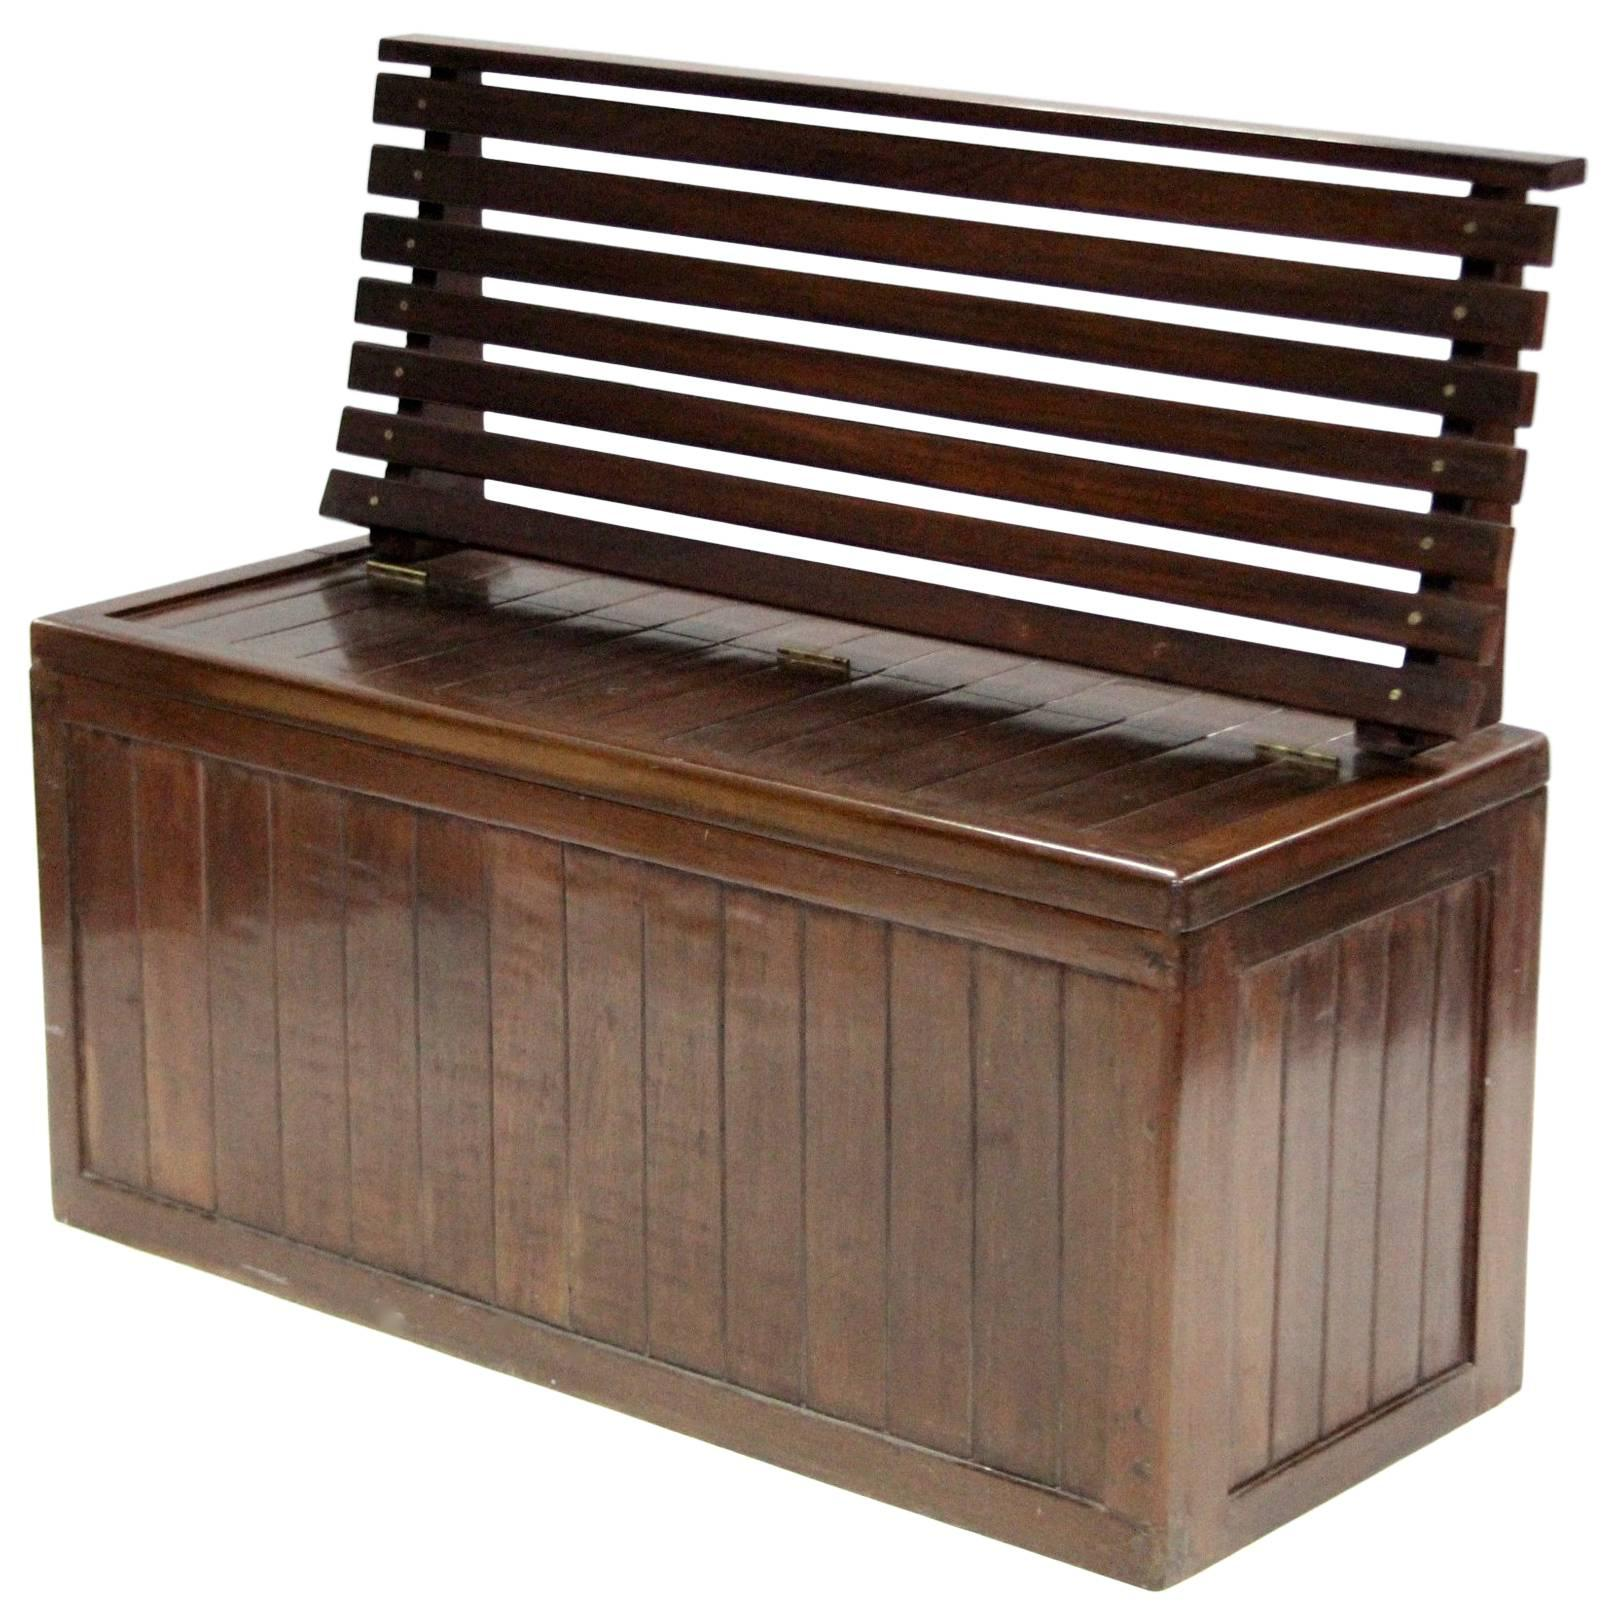 Slatted Hardwood Shipu0027s Deck Seat With Life Jacket Storage Mid 20th Century  For Sale